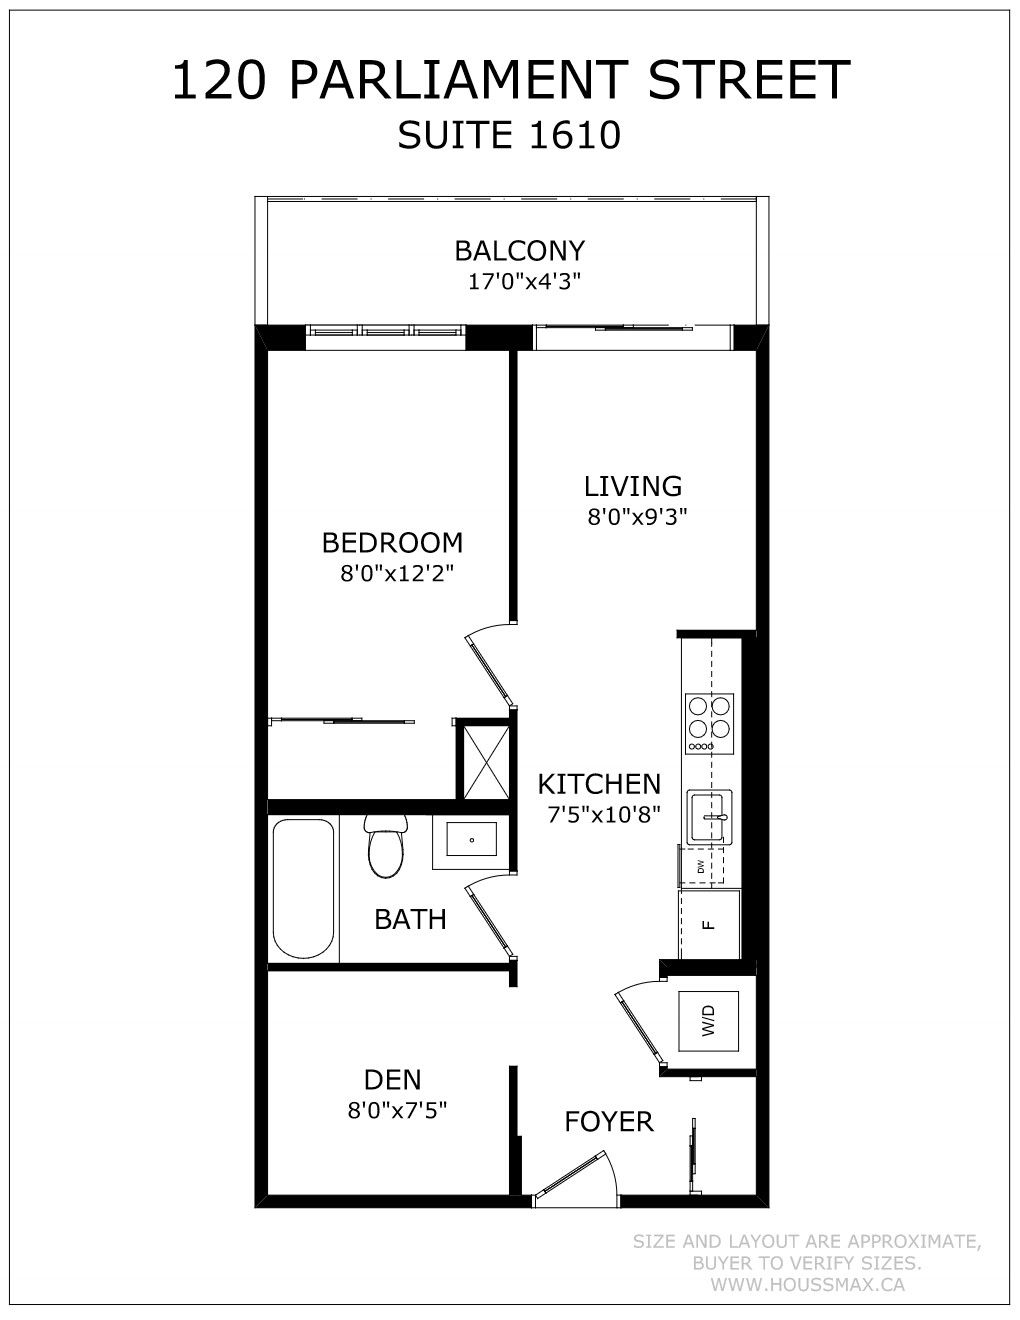 120 Parliament St Suite 1610 Floor Plans